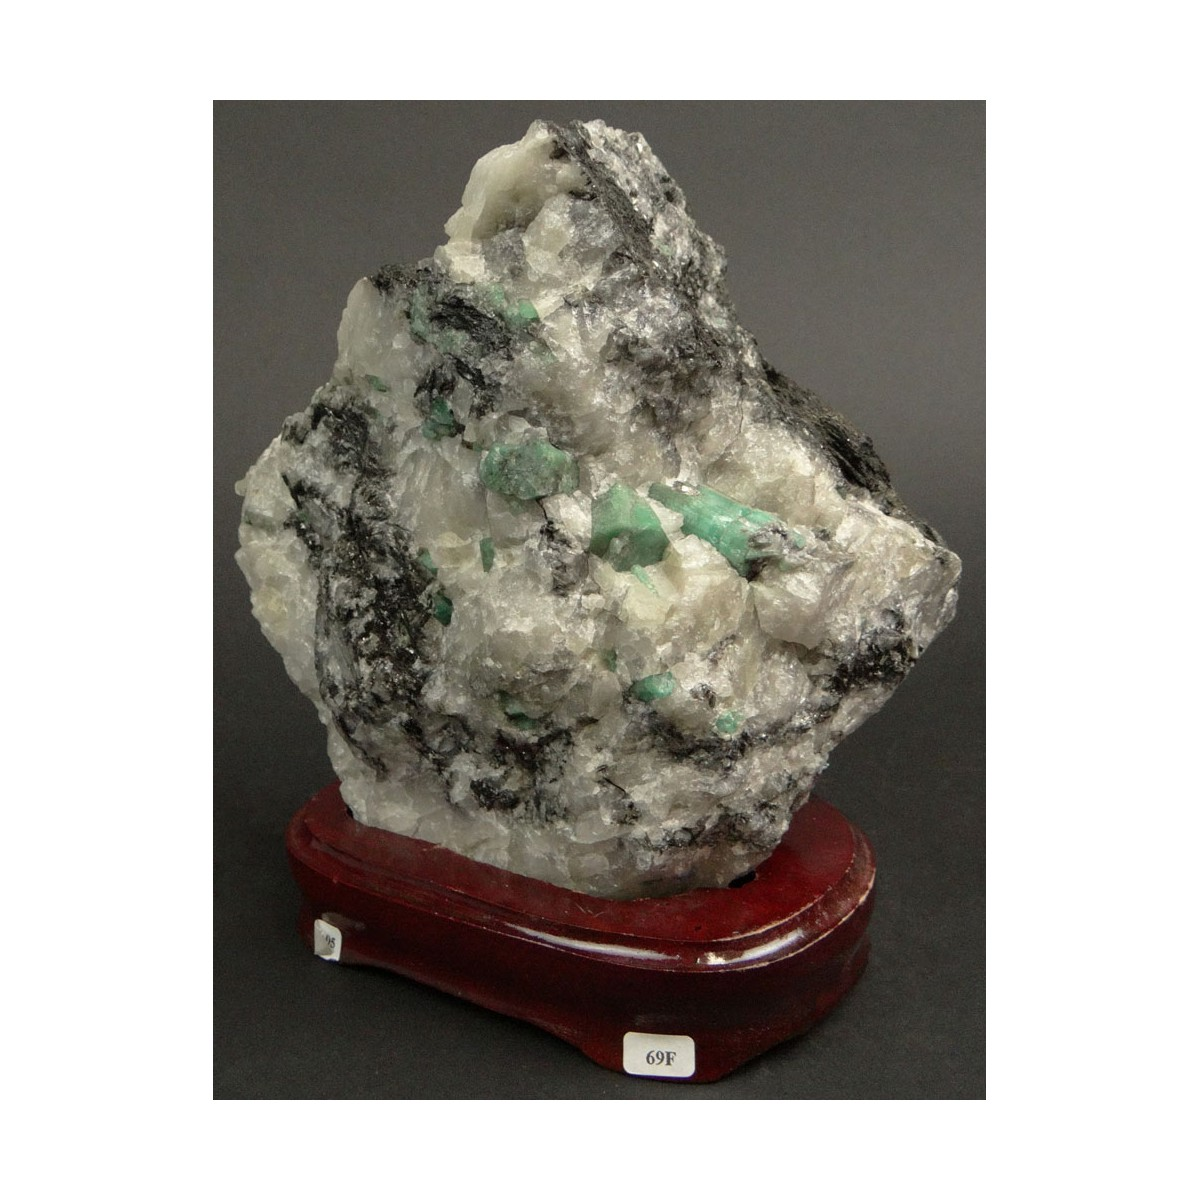 Mineral Specimen with Emeralds Mounted on Wooden Base. Measures 6-7/8 Inches by 6-1/2 Inches. Measu